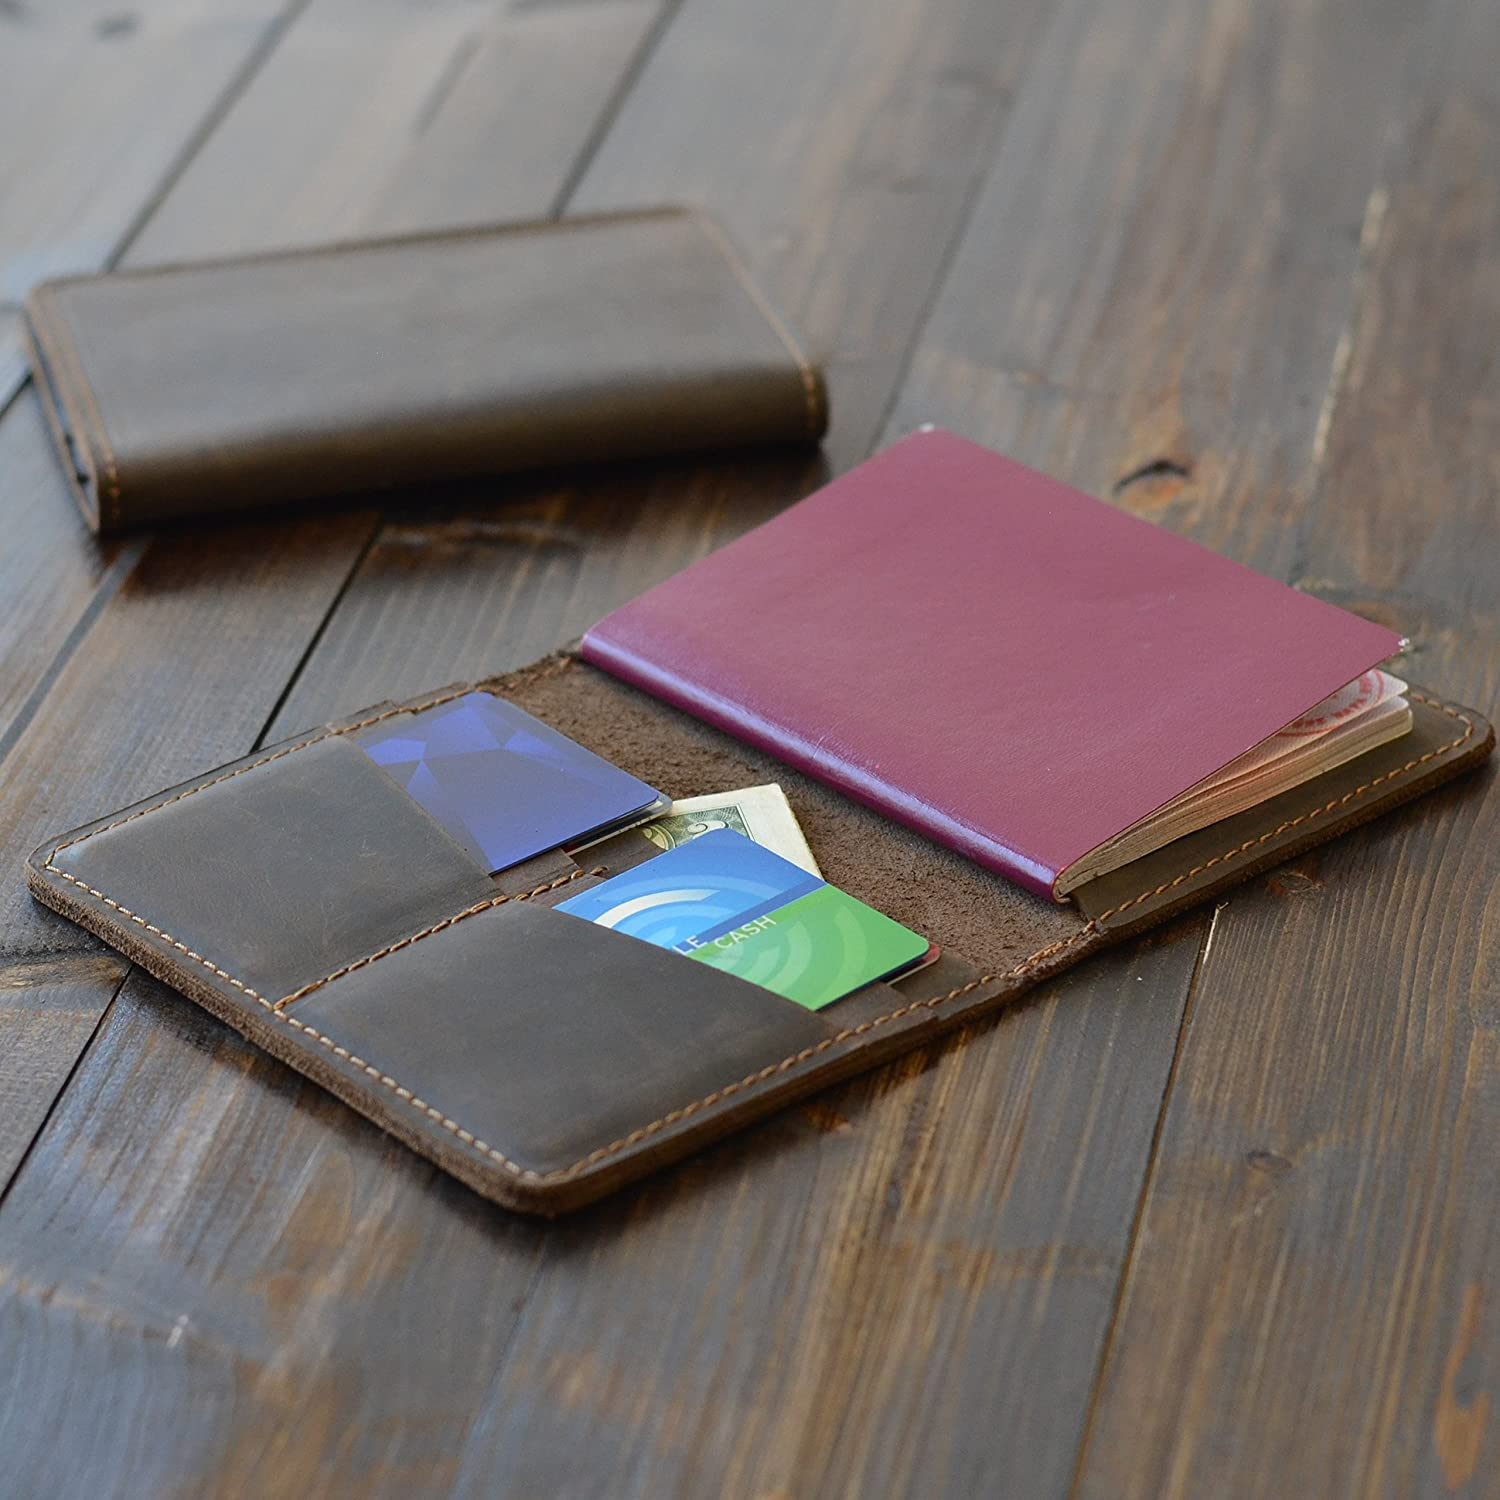 Pegai Distressed Leather Passport / Travel Wallet - Pike Chestnut Brown